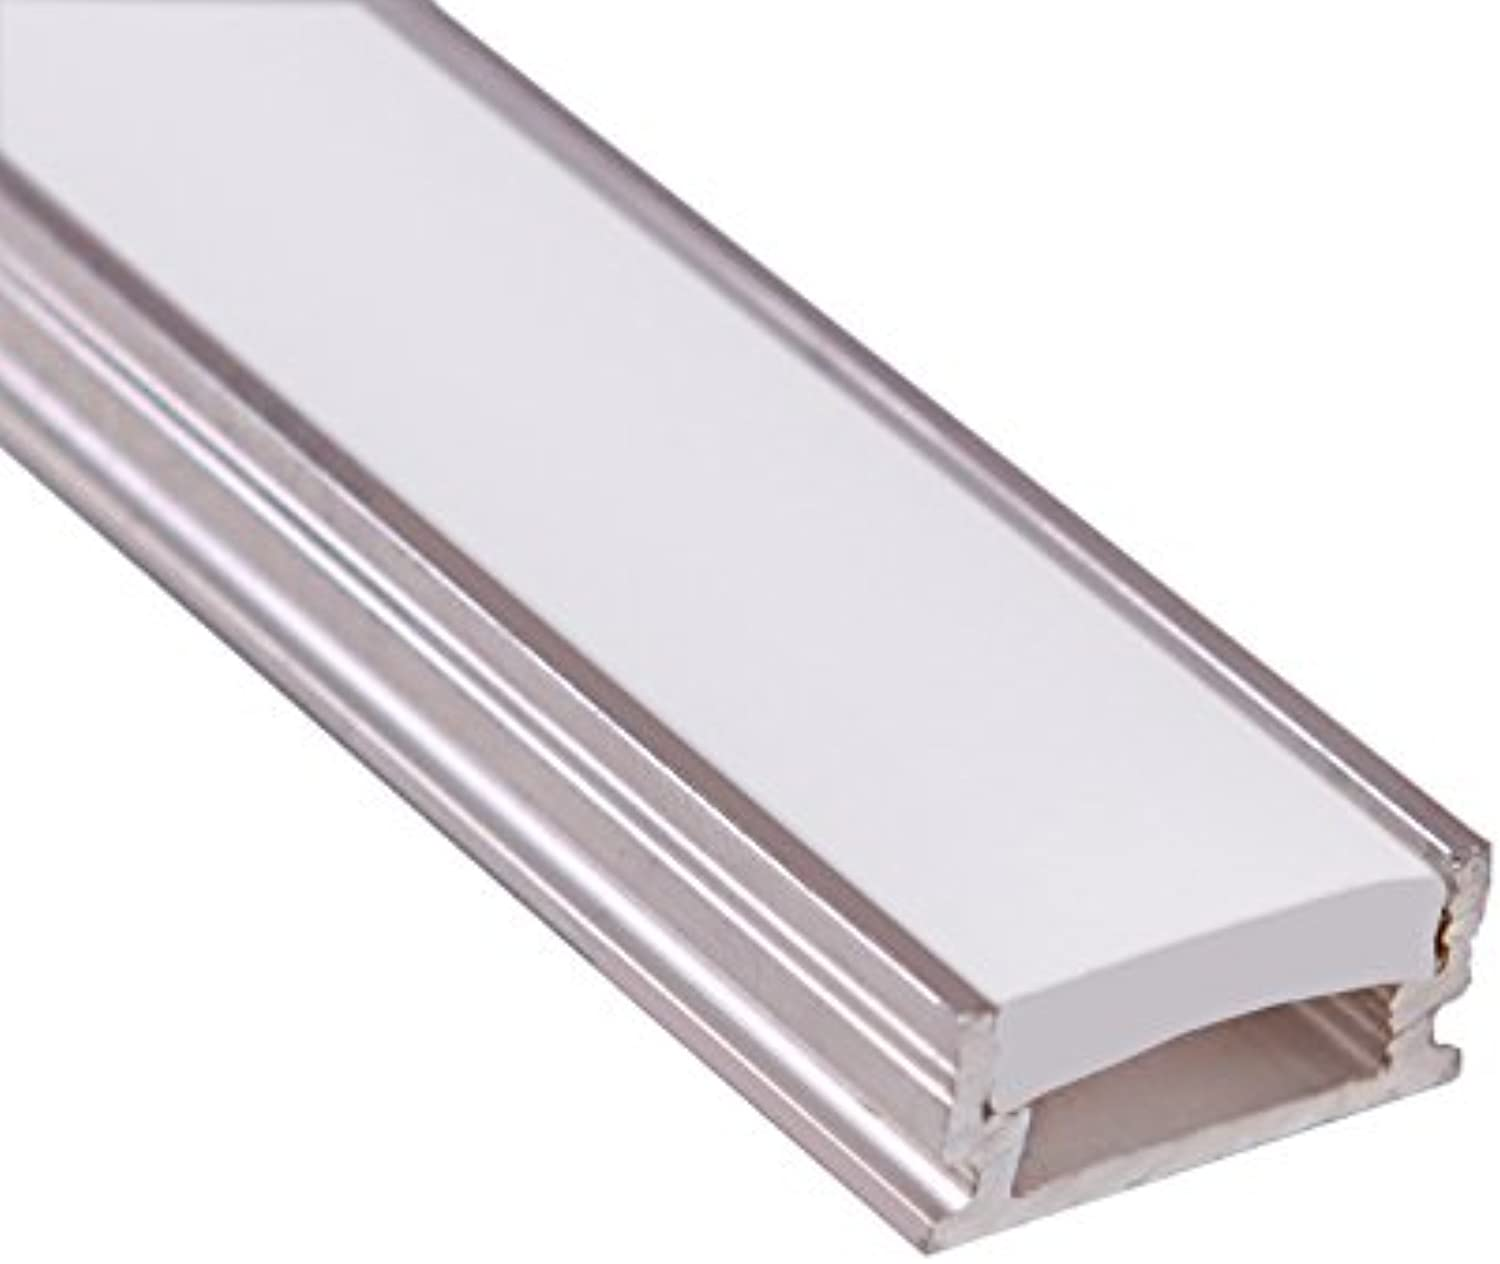 5 x LED aluminium profile (raw, non-anodized) with strong FROSTED diffuser for floor lighting applications, length  1000mm; LED Profil mit Abdeckung Opal (Diffusor) für LED Streifen Lnge 1m